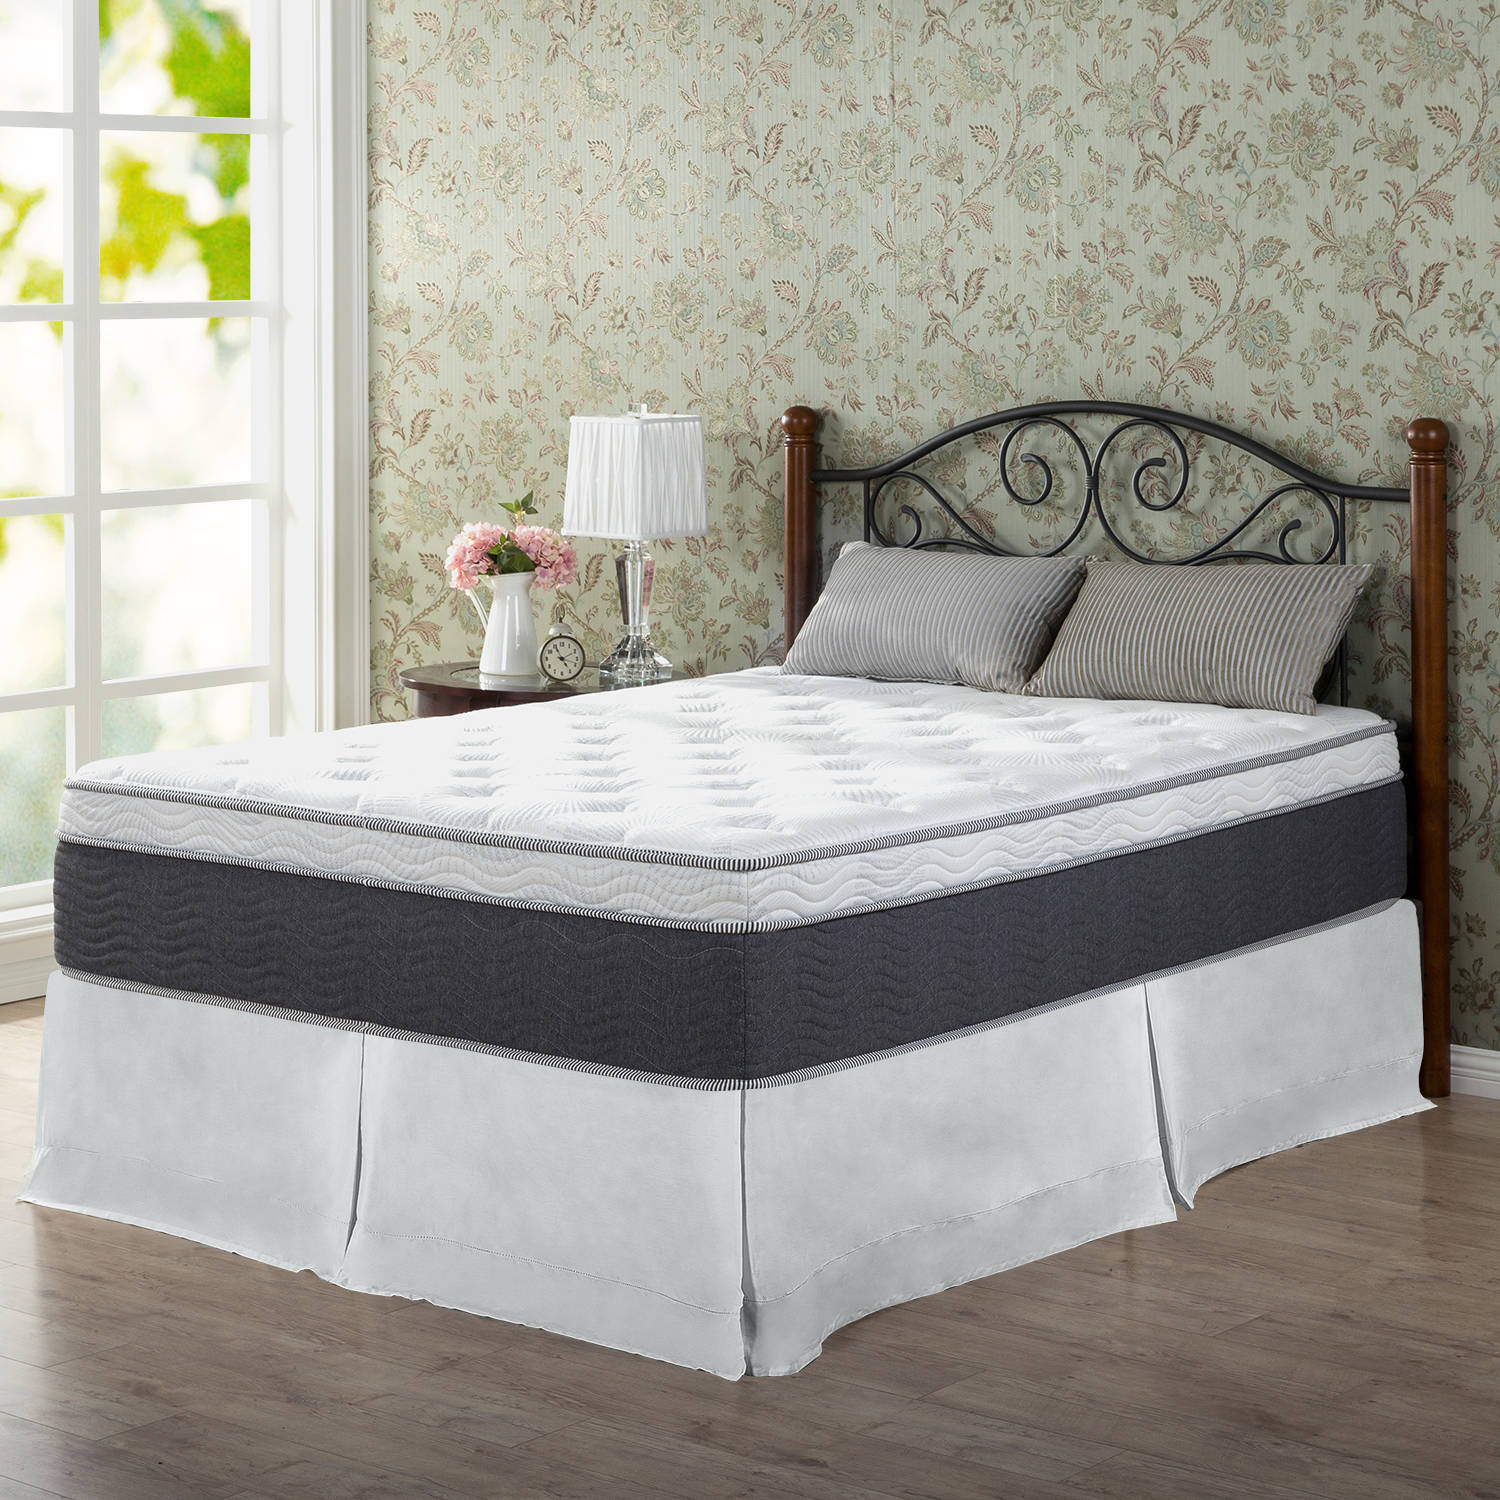 Slumber 1 By Zinus 13 5 Inch Adaptive Euro Top Spring Mattress